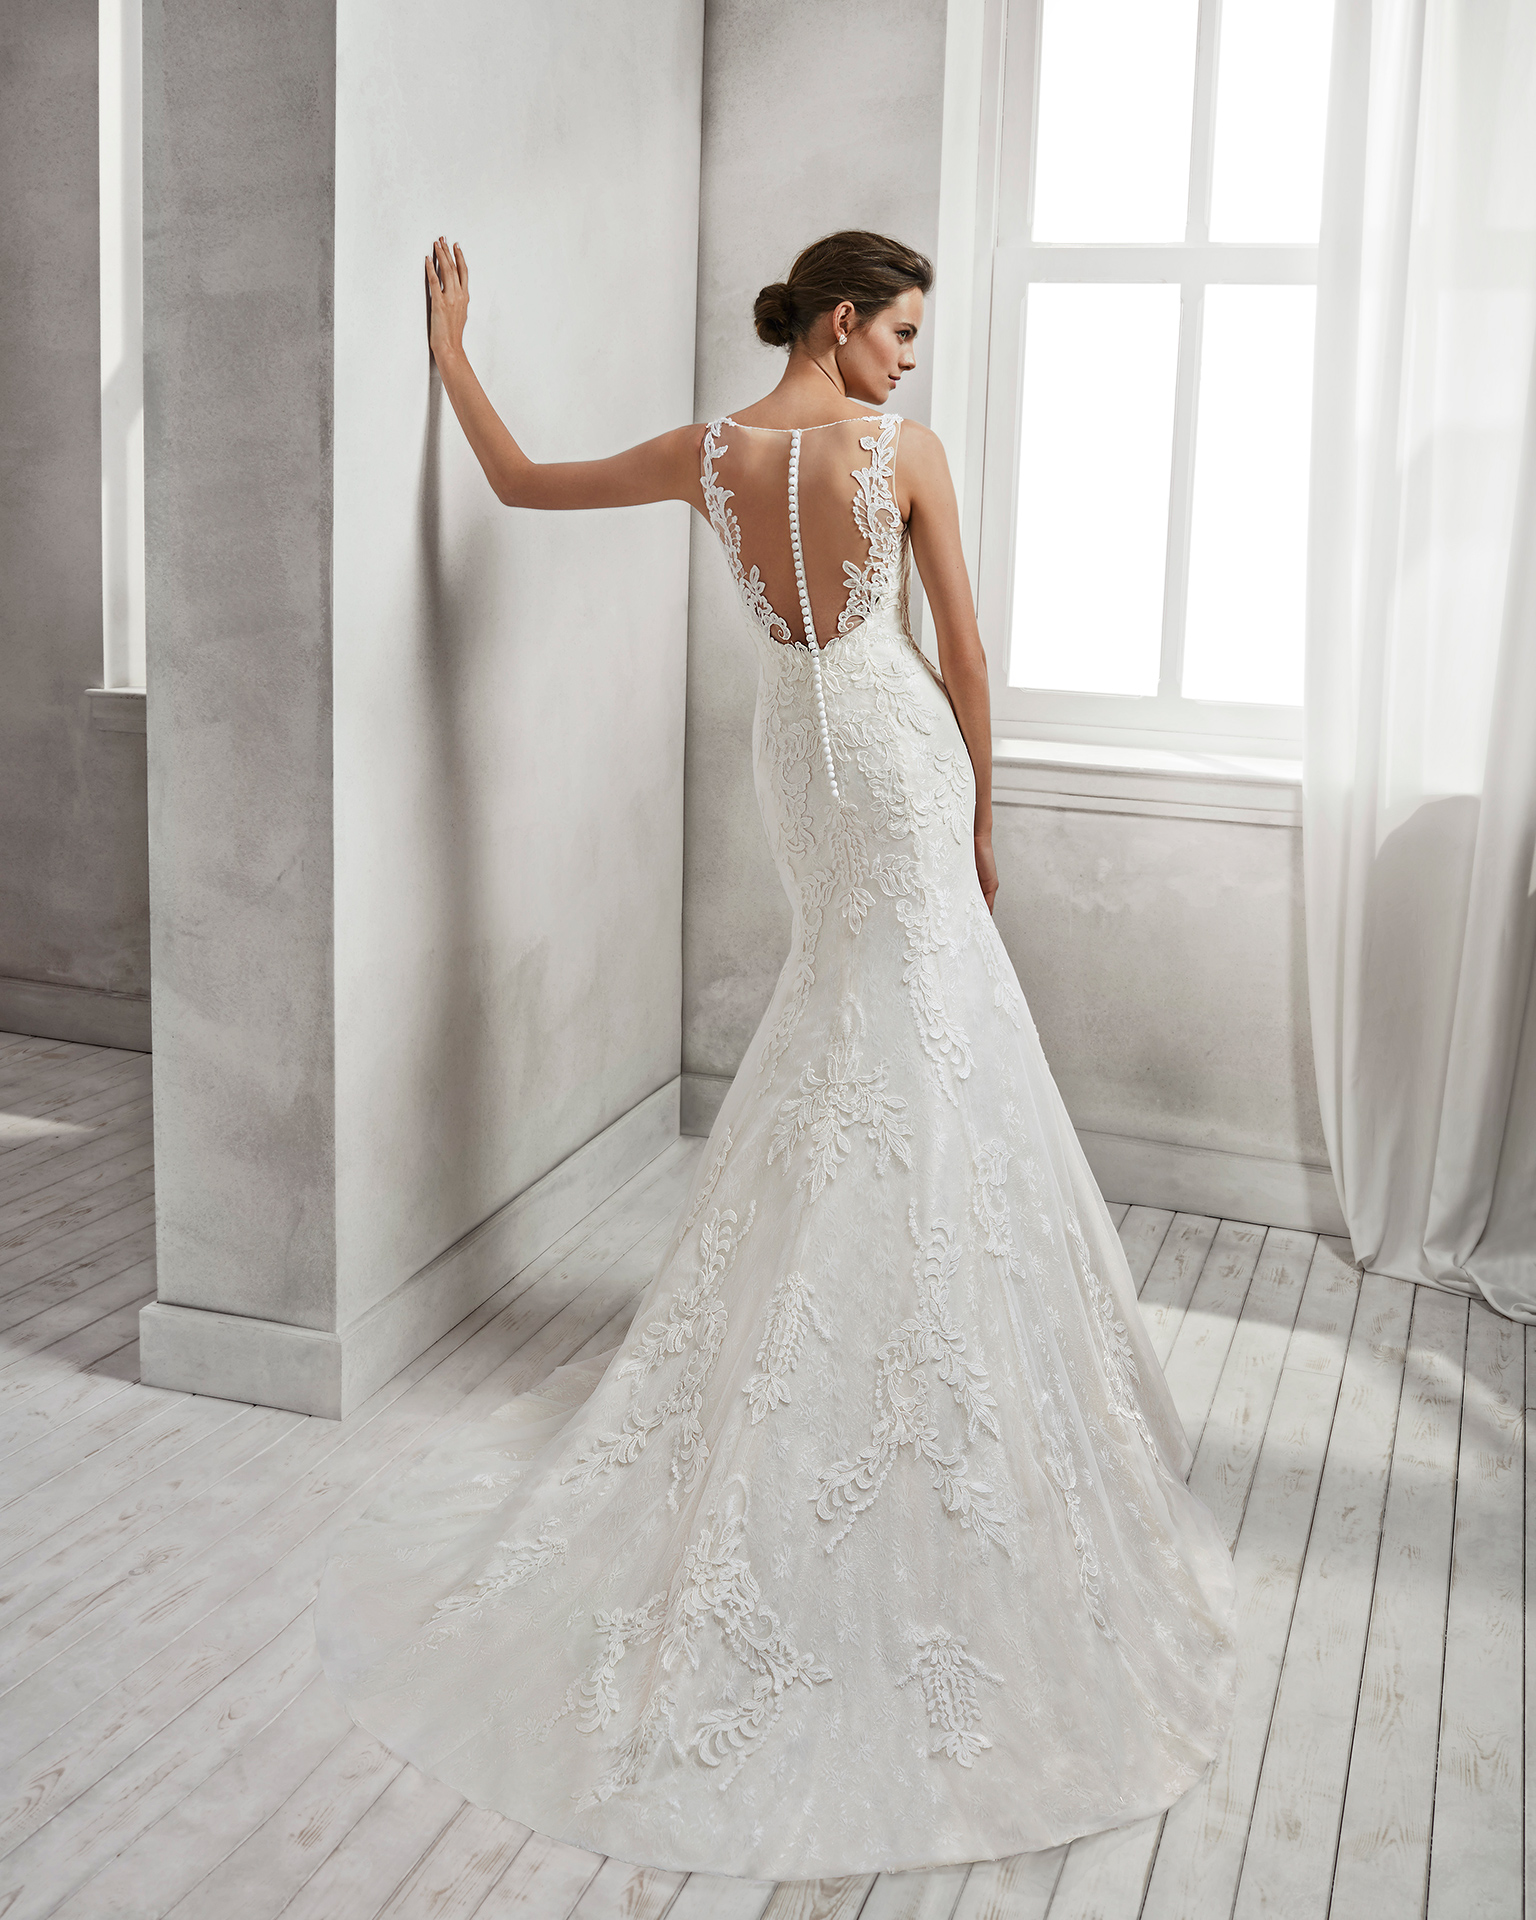 Mermaid-style beaded lace wedding dress with low back, in ivory and natural.